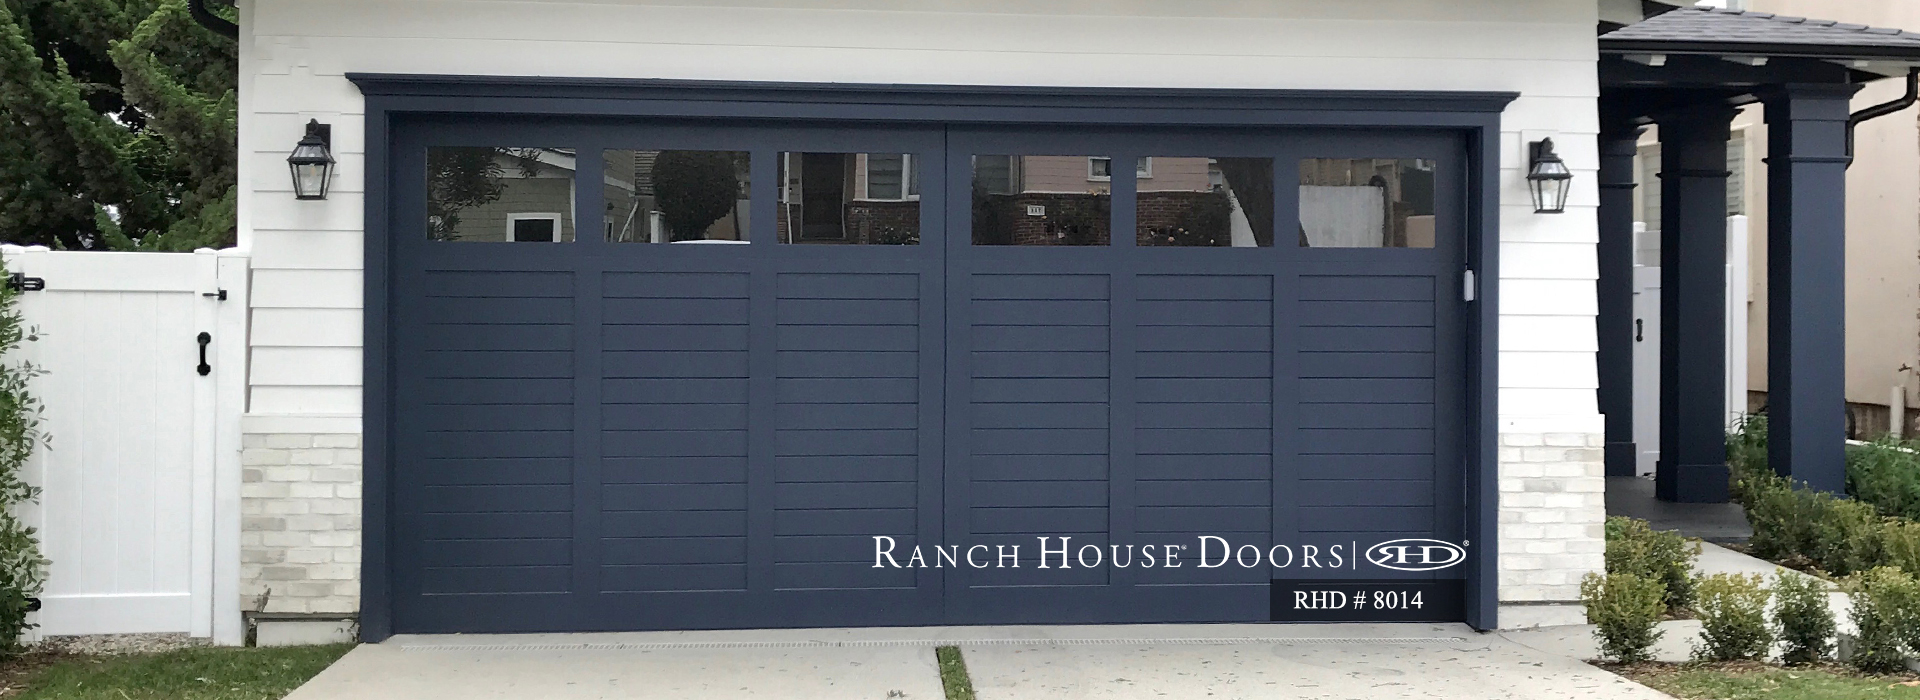 Custom Wood Garage Doors, Entry & Pedestrian Gates, Slider ... on home front door designs, ranch house french doors, ranch house exterior doors, ranch house front windows, ranch house double entry doors, ranch house bathroom design,